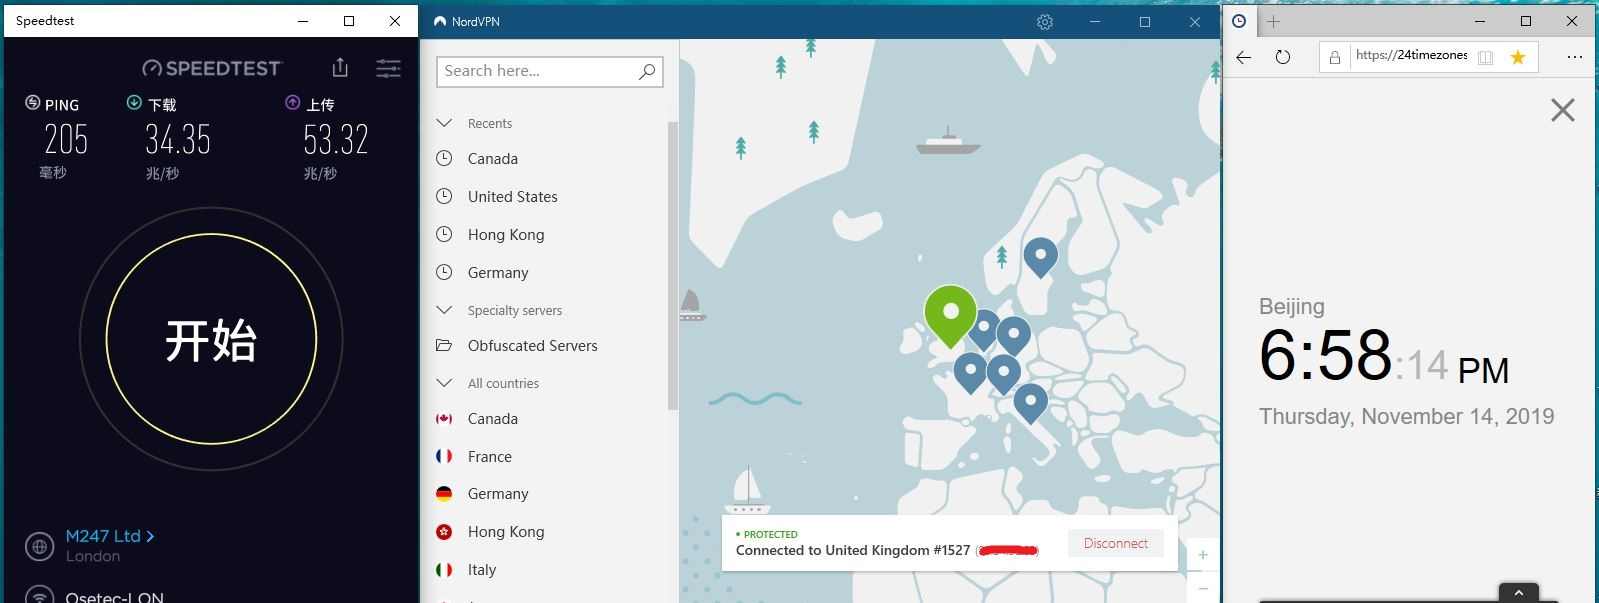 Windows NordVPN United Kingdom #1527 中国VPN翻墙 科学上网 Speedtest测速 - 20191114